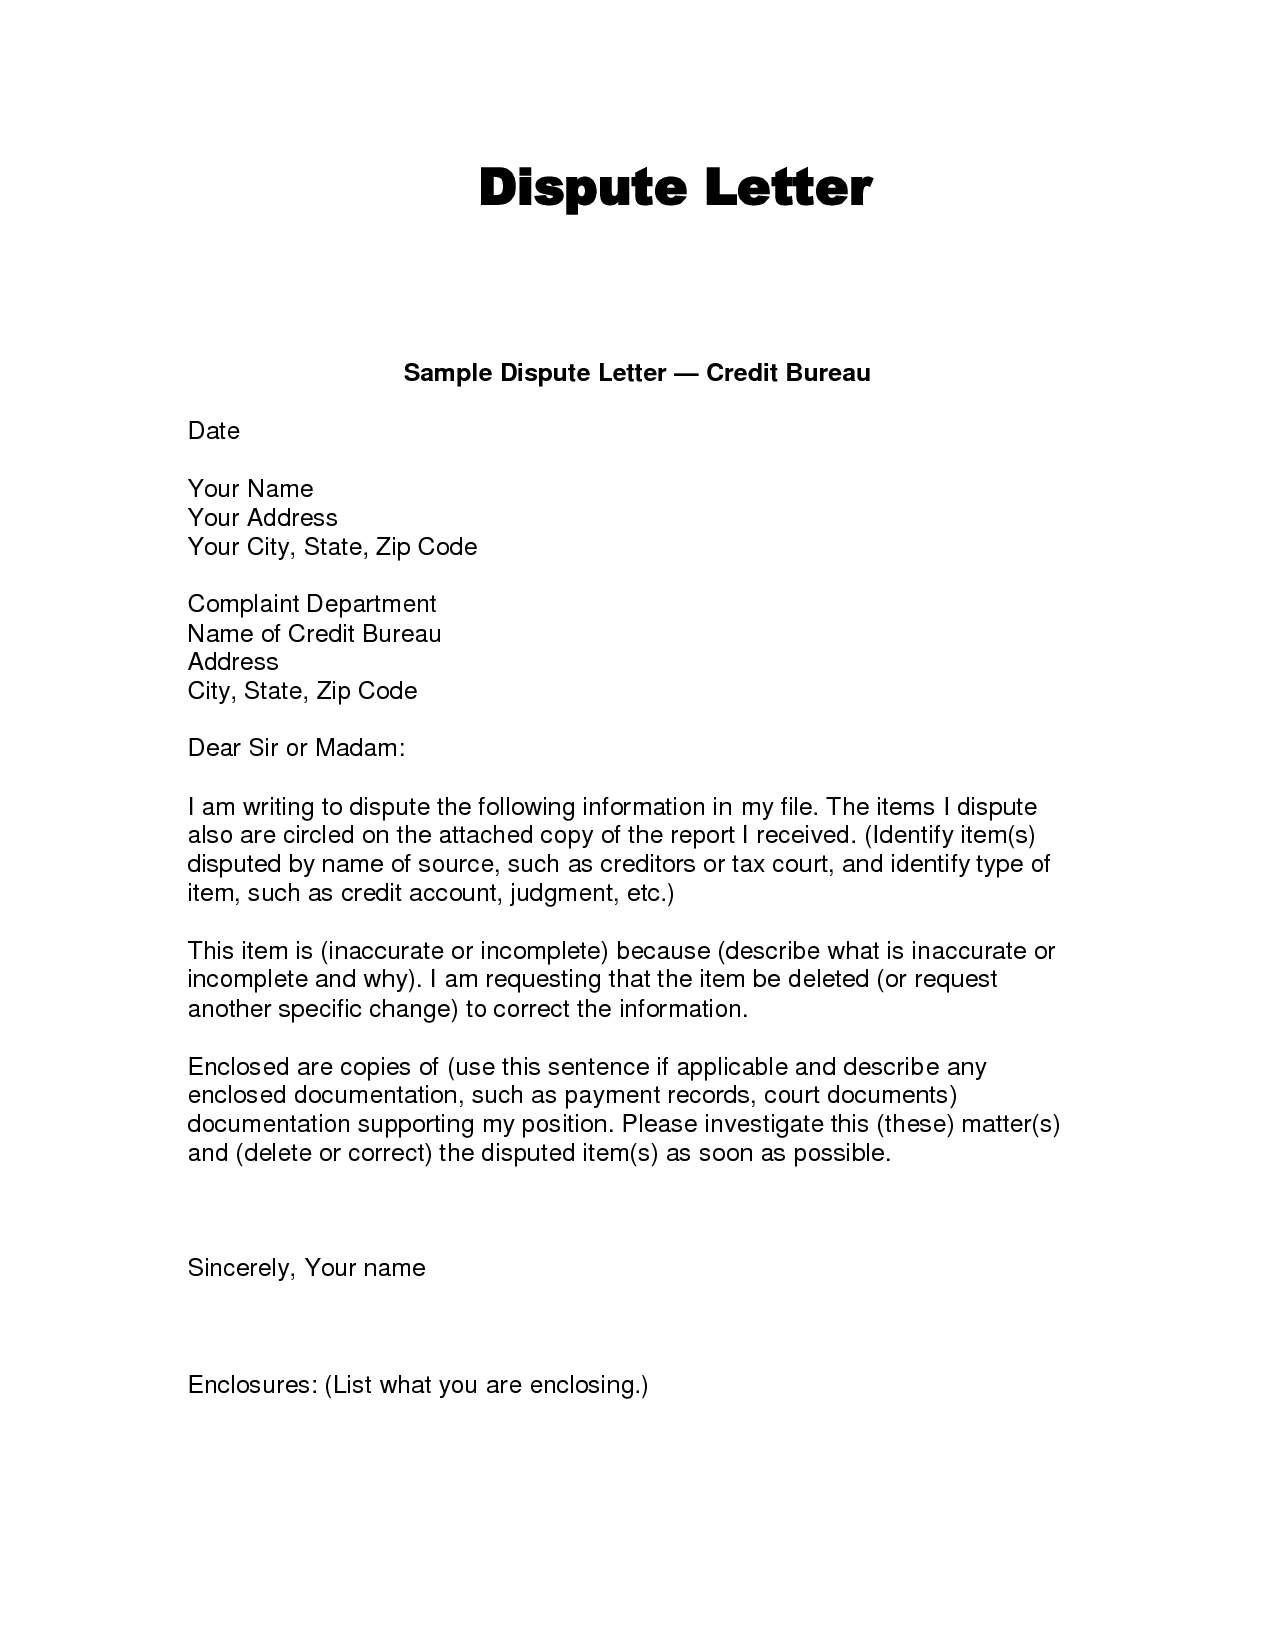 Credit Dispute Letter Template Pdf - Credit Dispute Letter Templates Acurnamedia